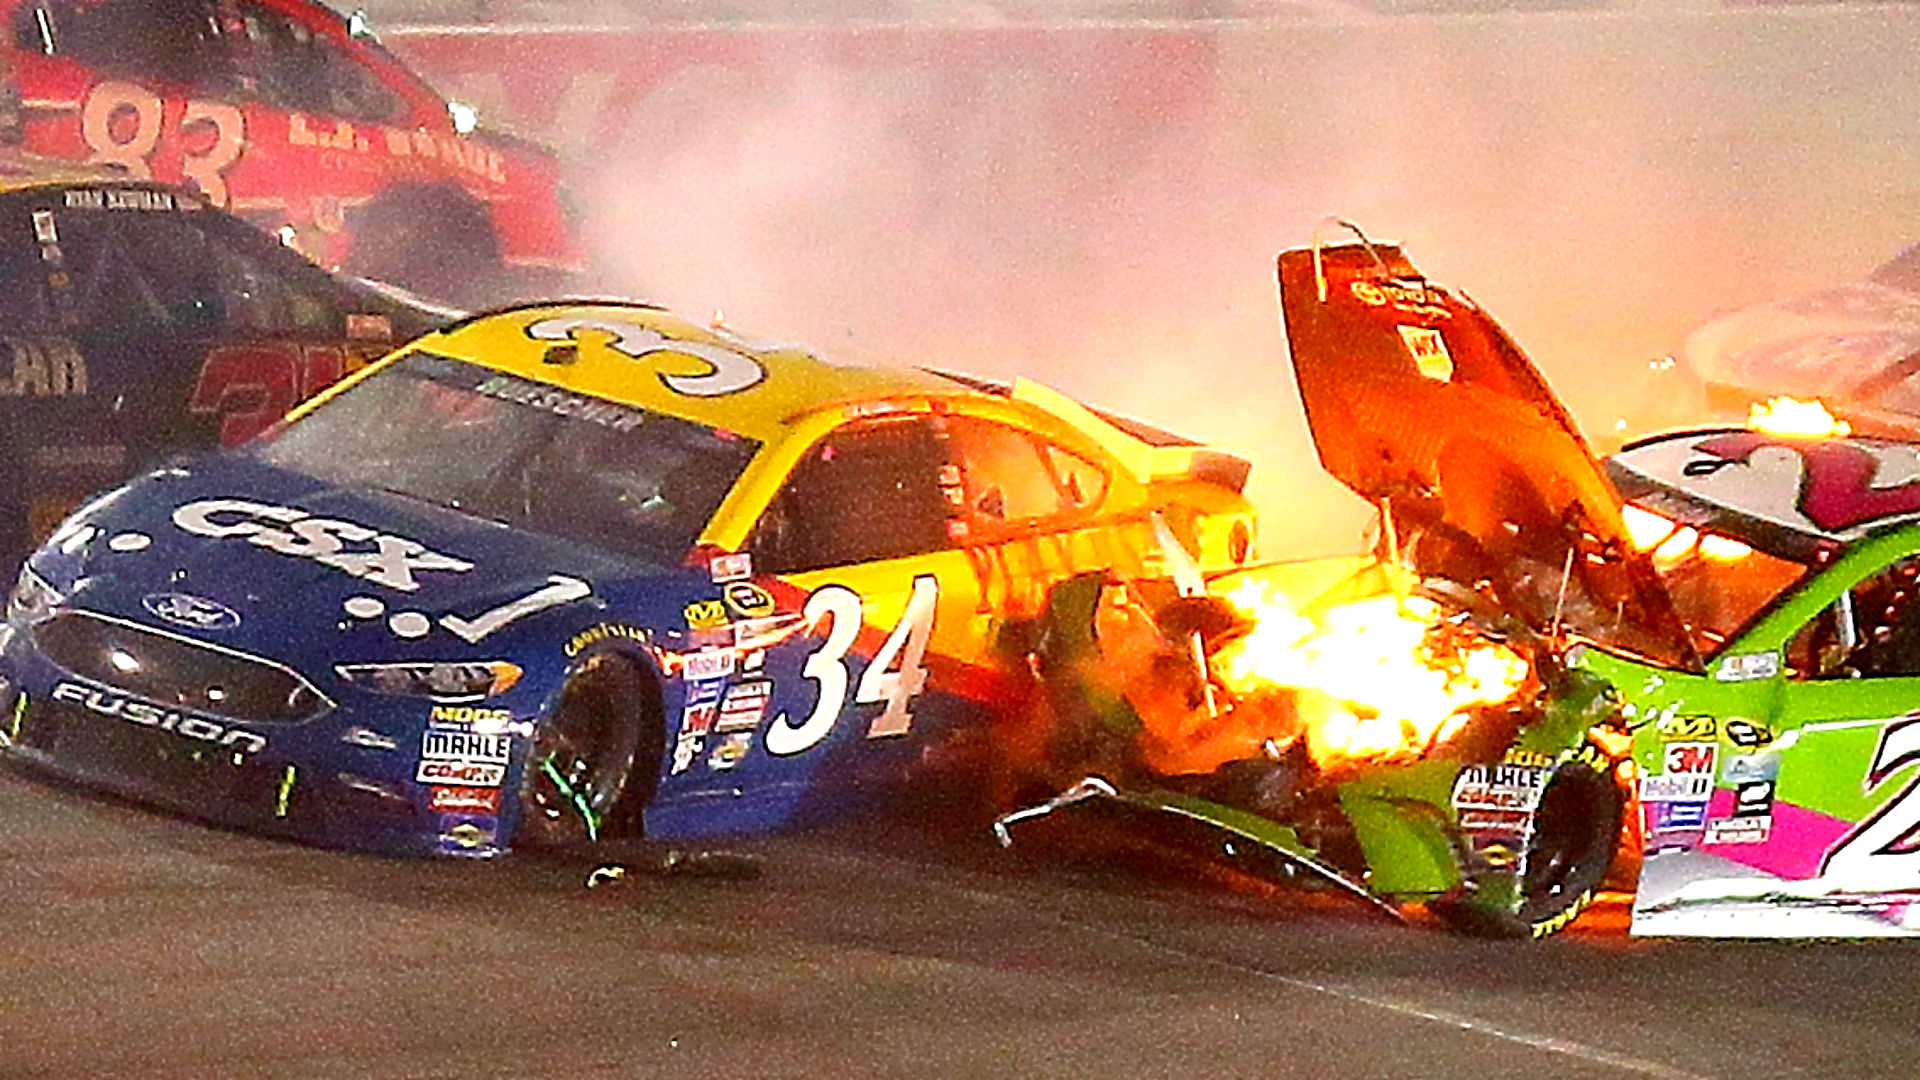 NASCAR playoffs begin with amped up aggression and attitude